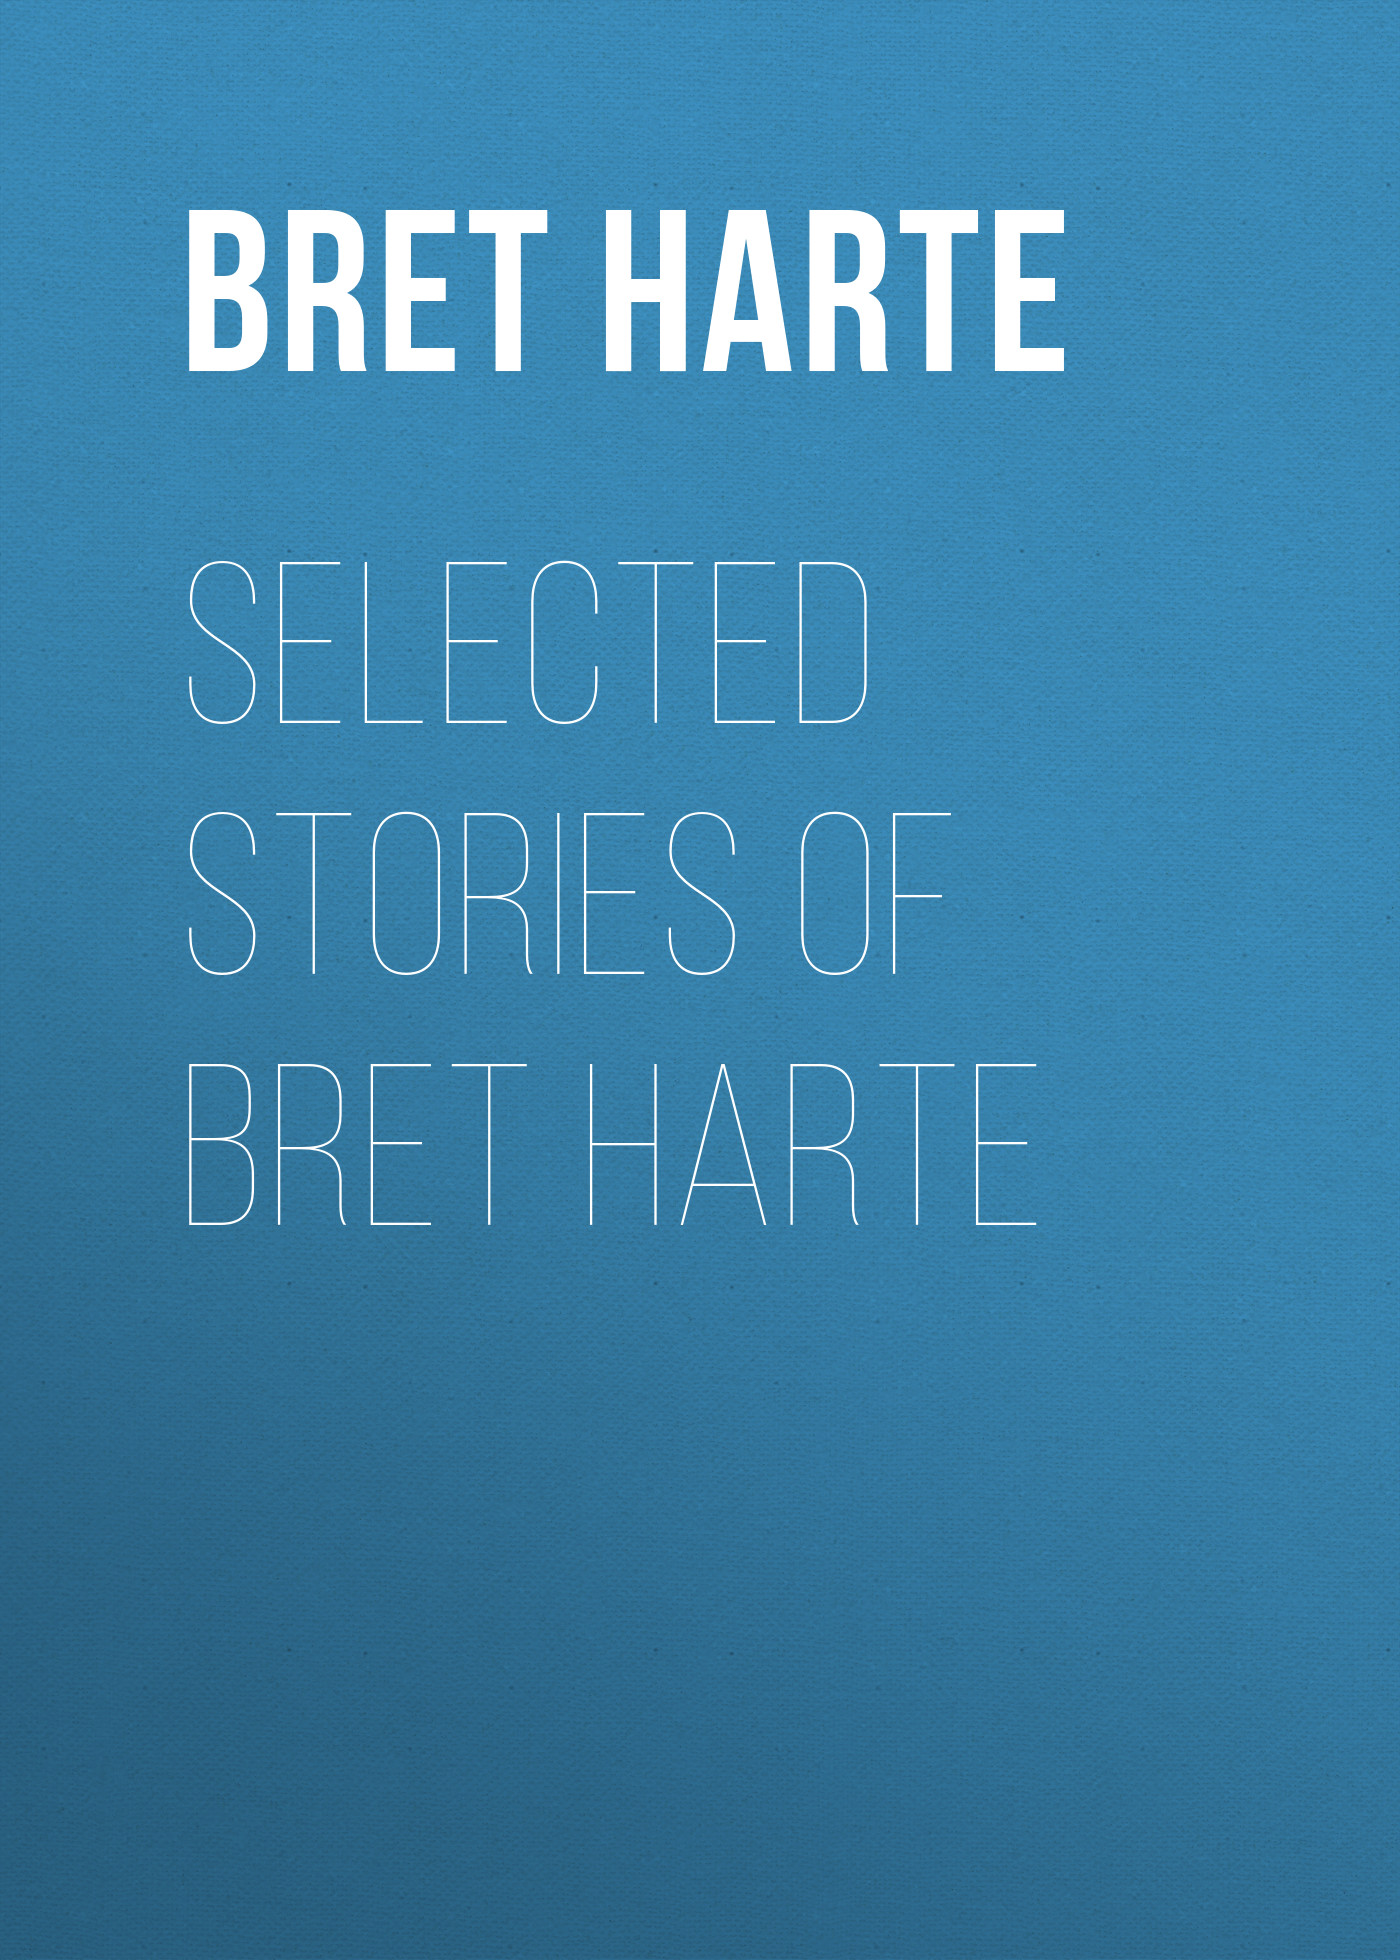 Bret Harte Selected Stories of Bret Harte bret harte sally dows